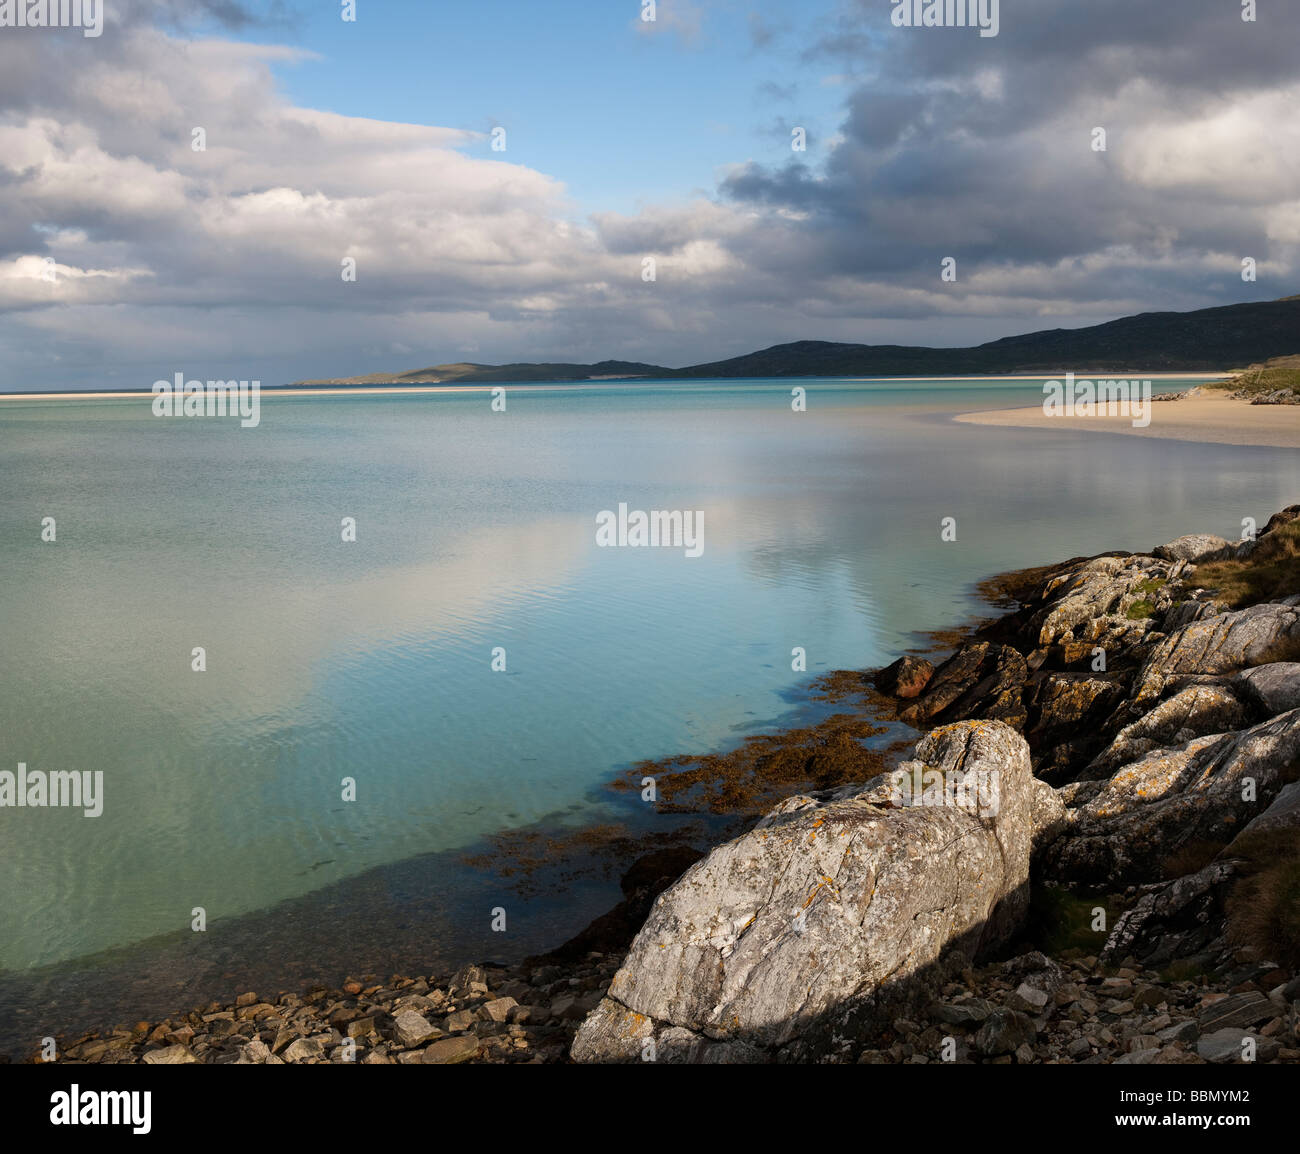 Clouds over Luskentyre beach, Isle of Harris, Outer Hebrides, Scotland - Stock Image